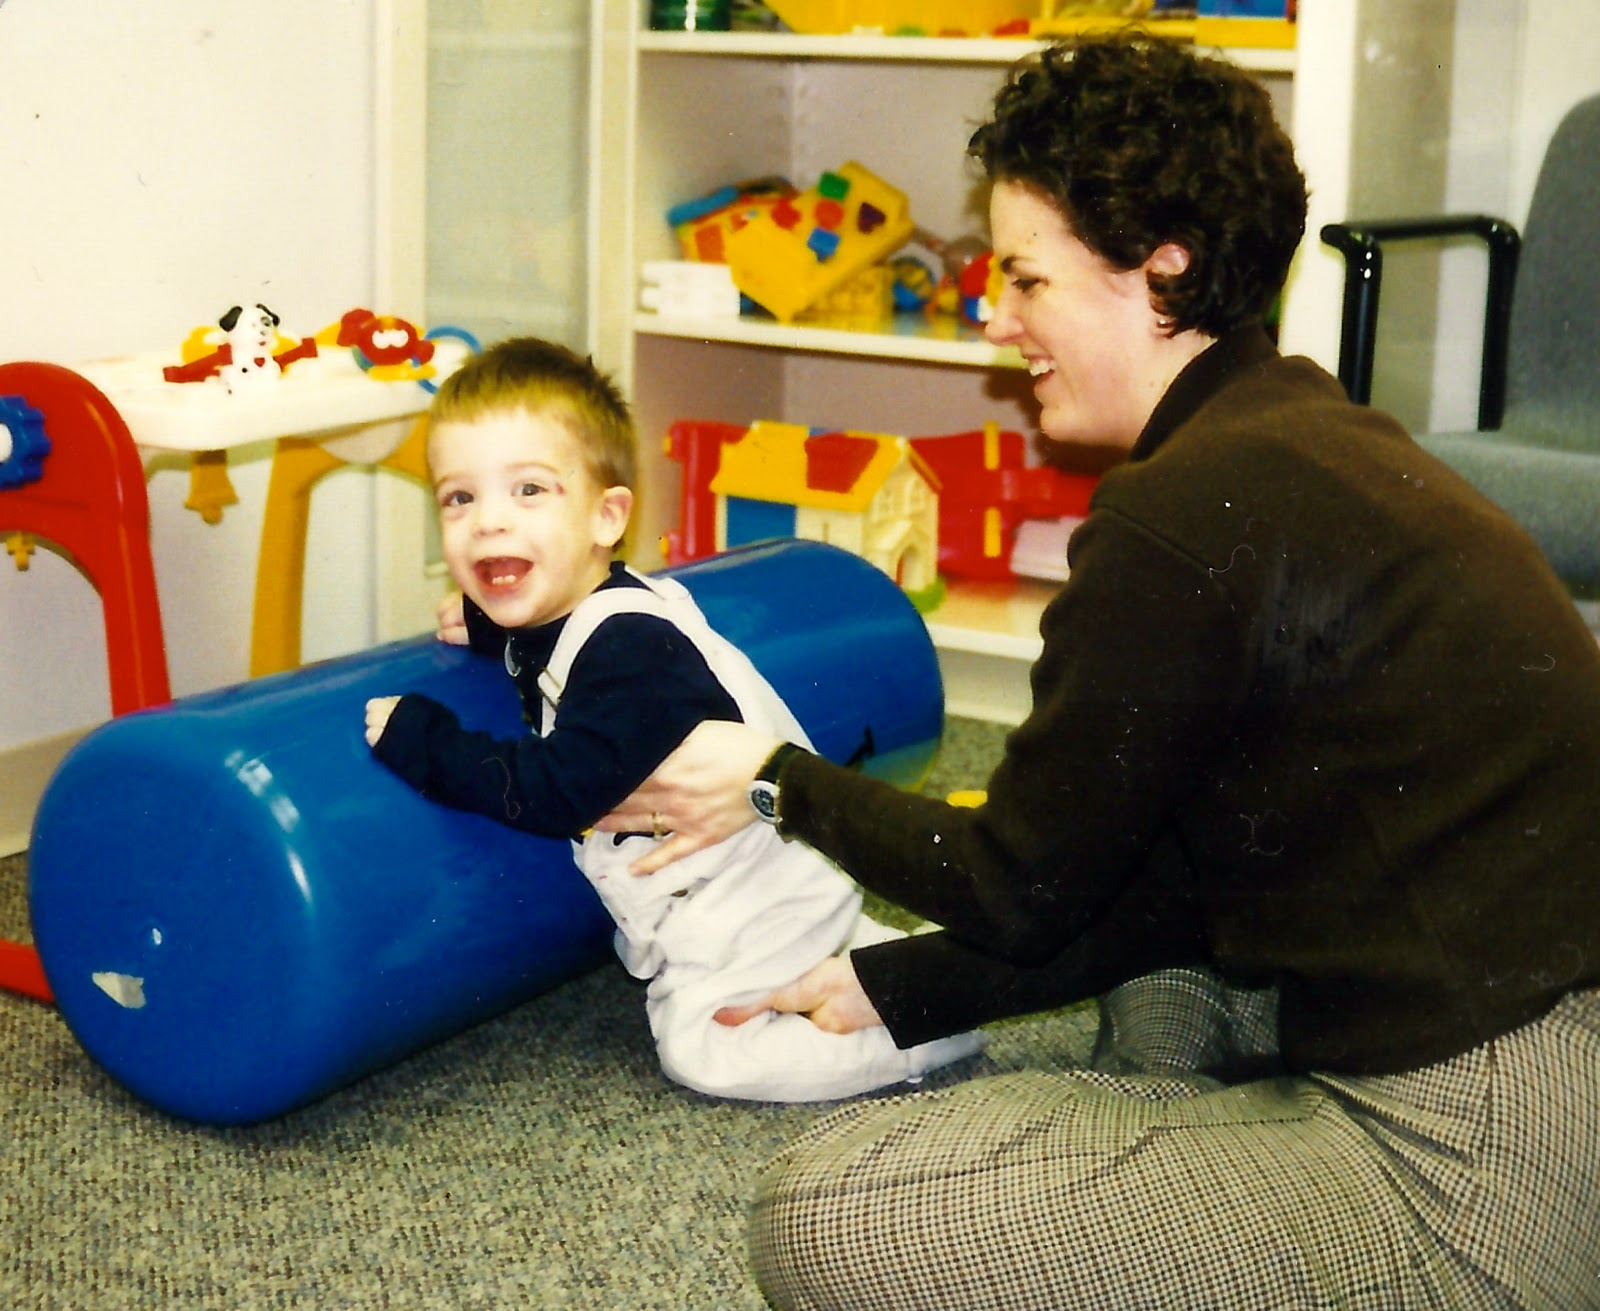 Cerebral palsy physical therapy - Benjamin Doing Physical Therapy On The Bolster And Entertaining Everyone Around